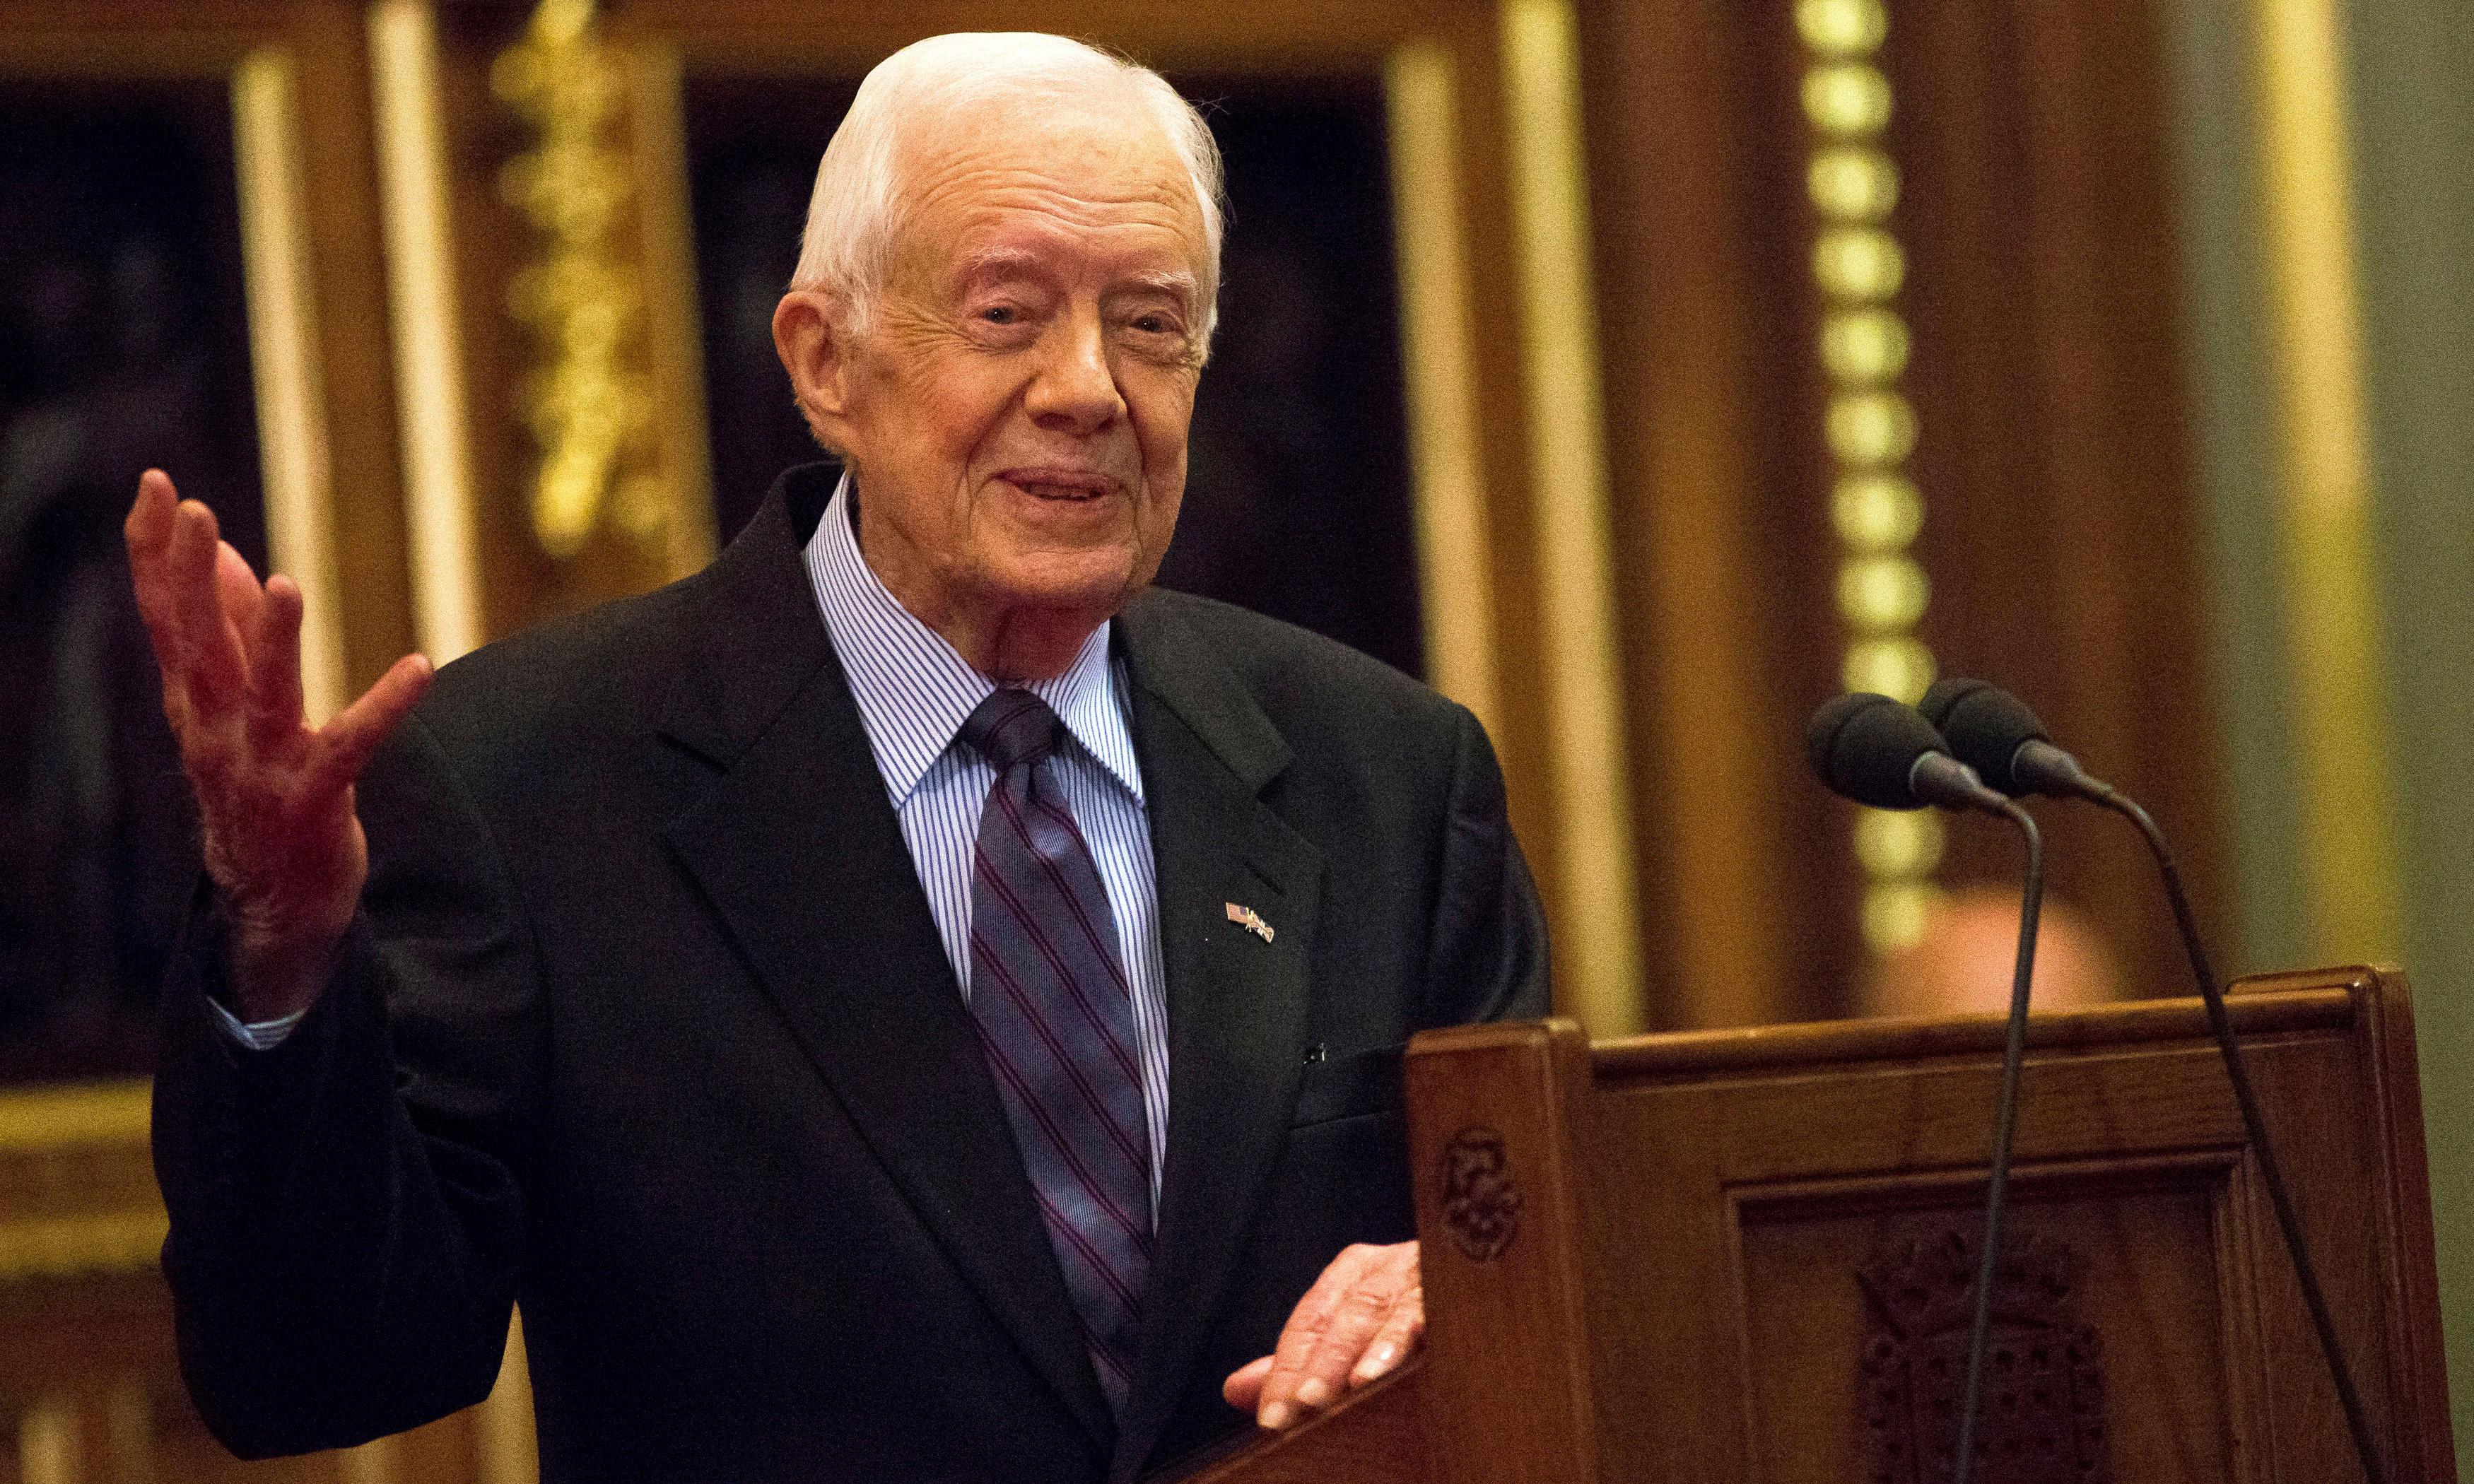 Jimmy Carter in hospital with pelvis fracture after fall at Georgia home